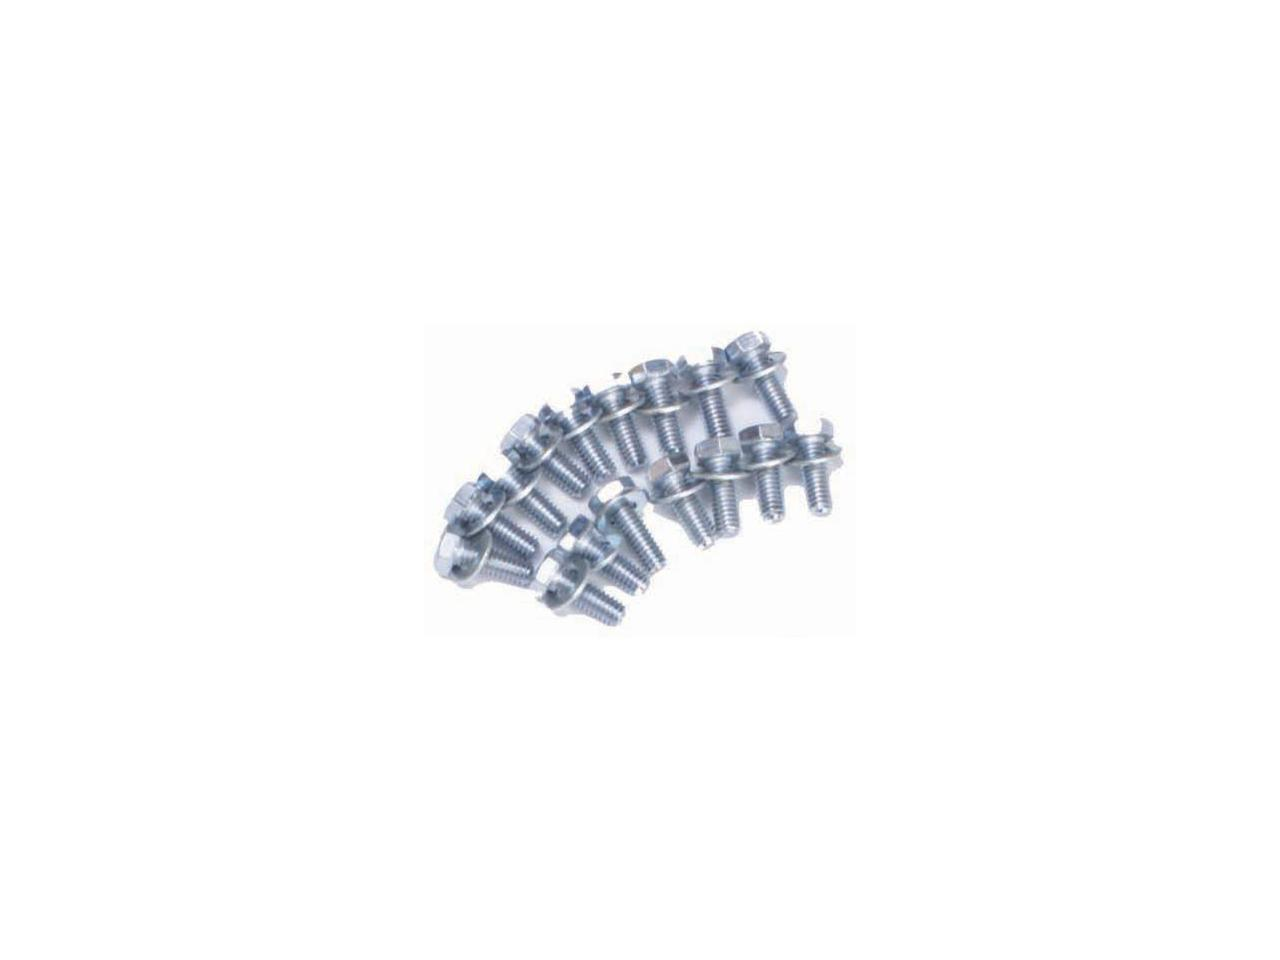 AERO Beadlock Bolt Kit - (16 Bolts)